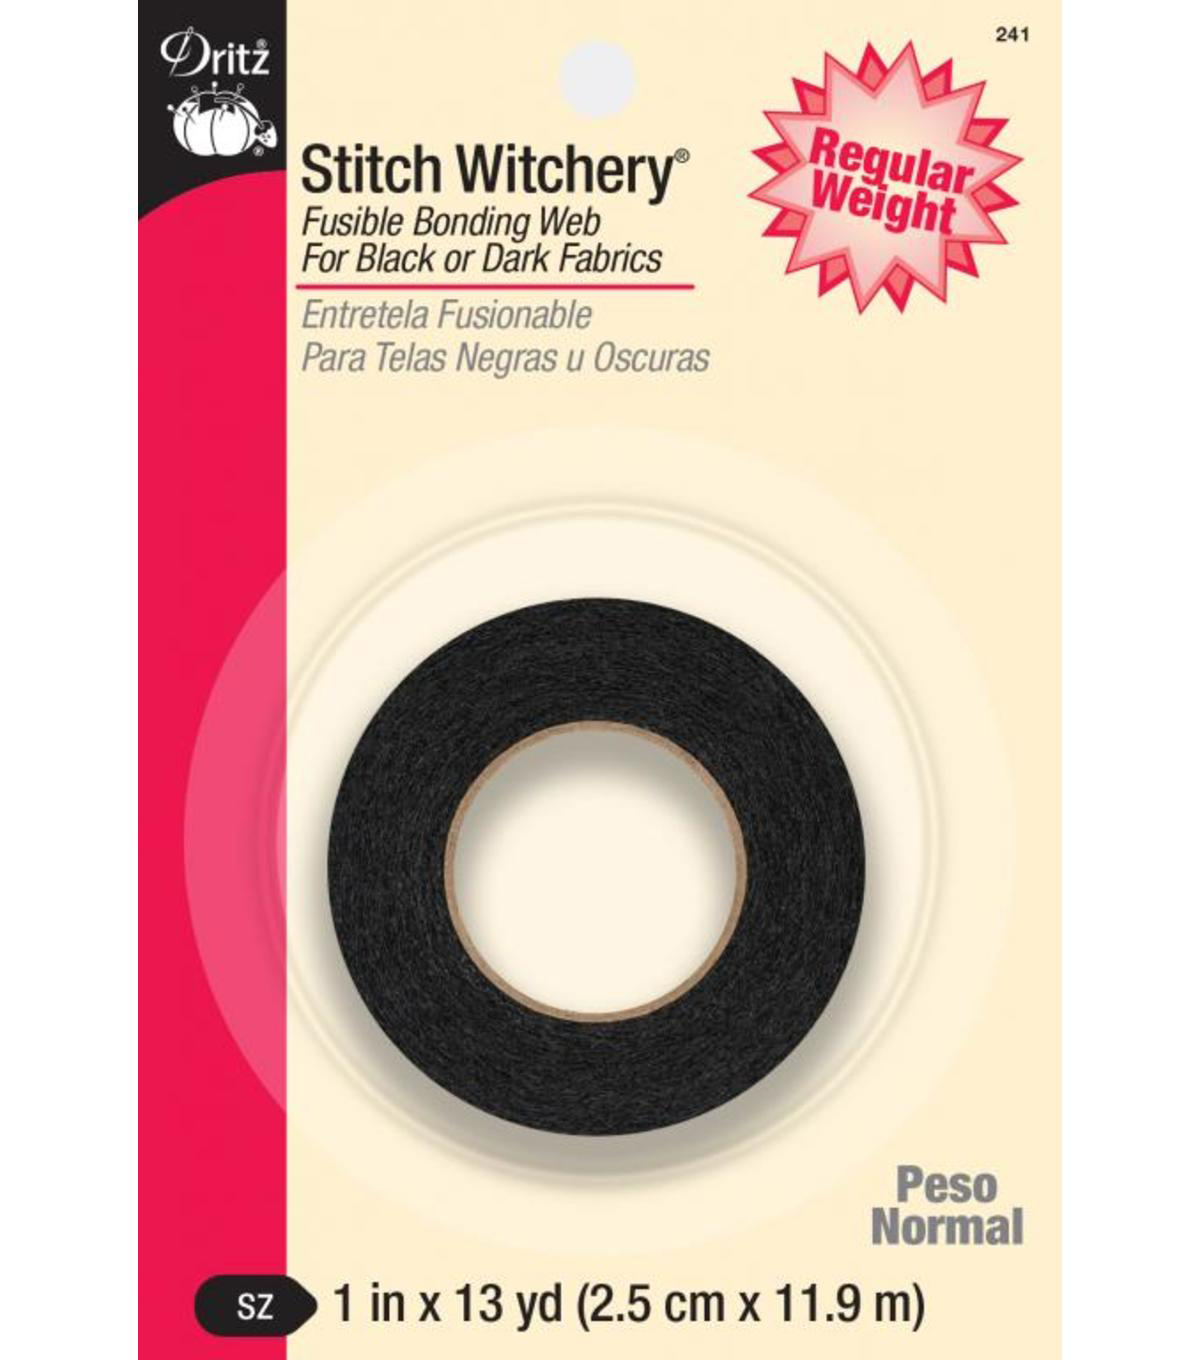 "Dritz Stitch Witchery Fusible Bonding Web 1"" Wide x 13Yds"